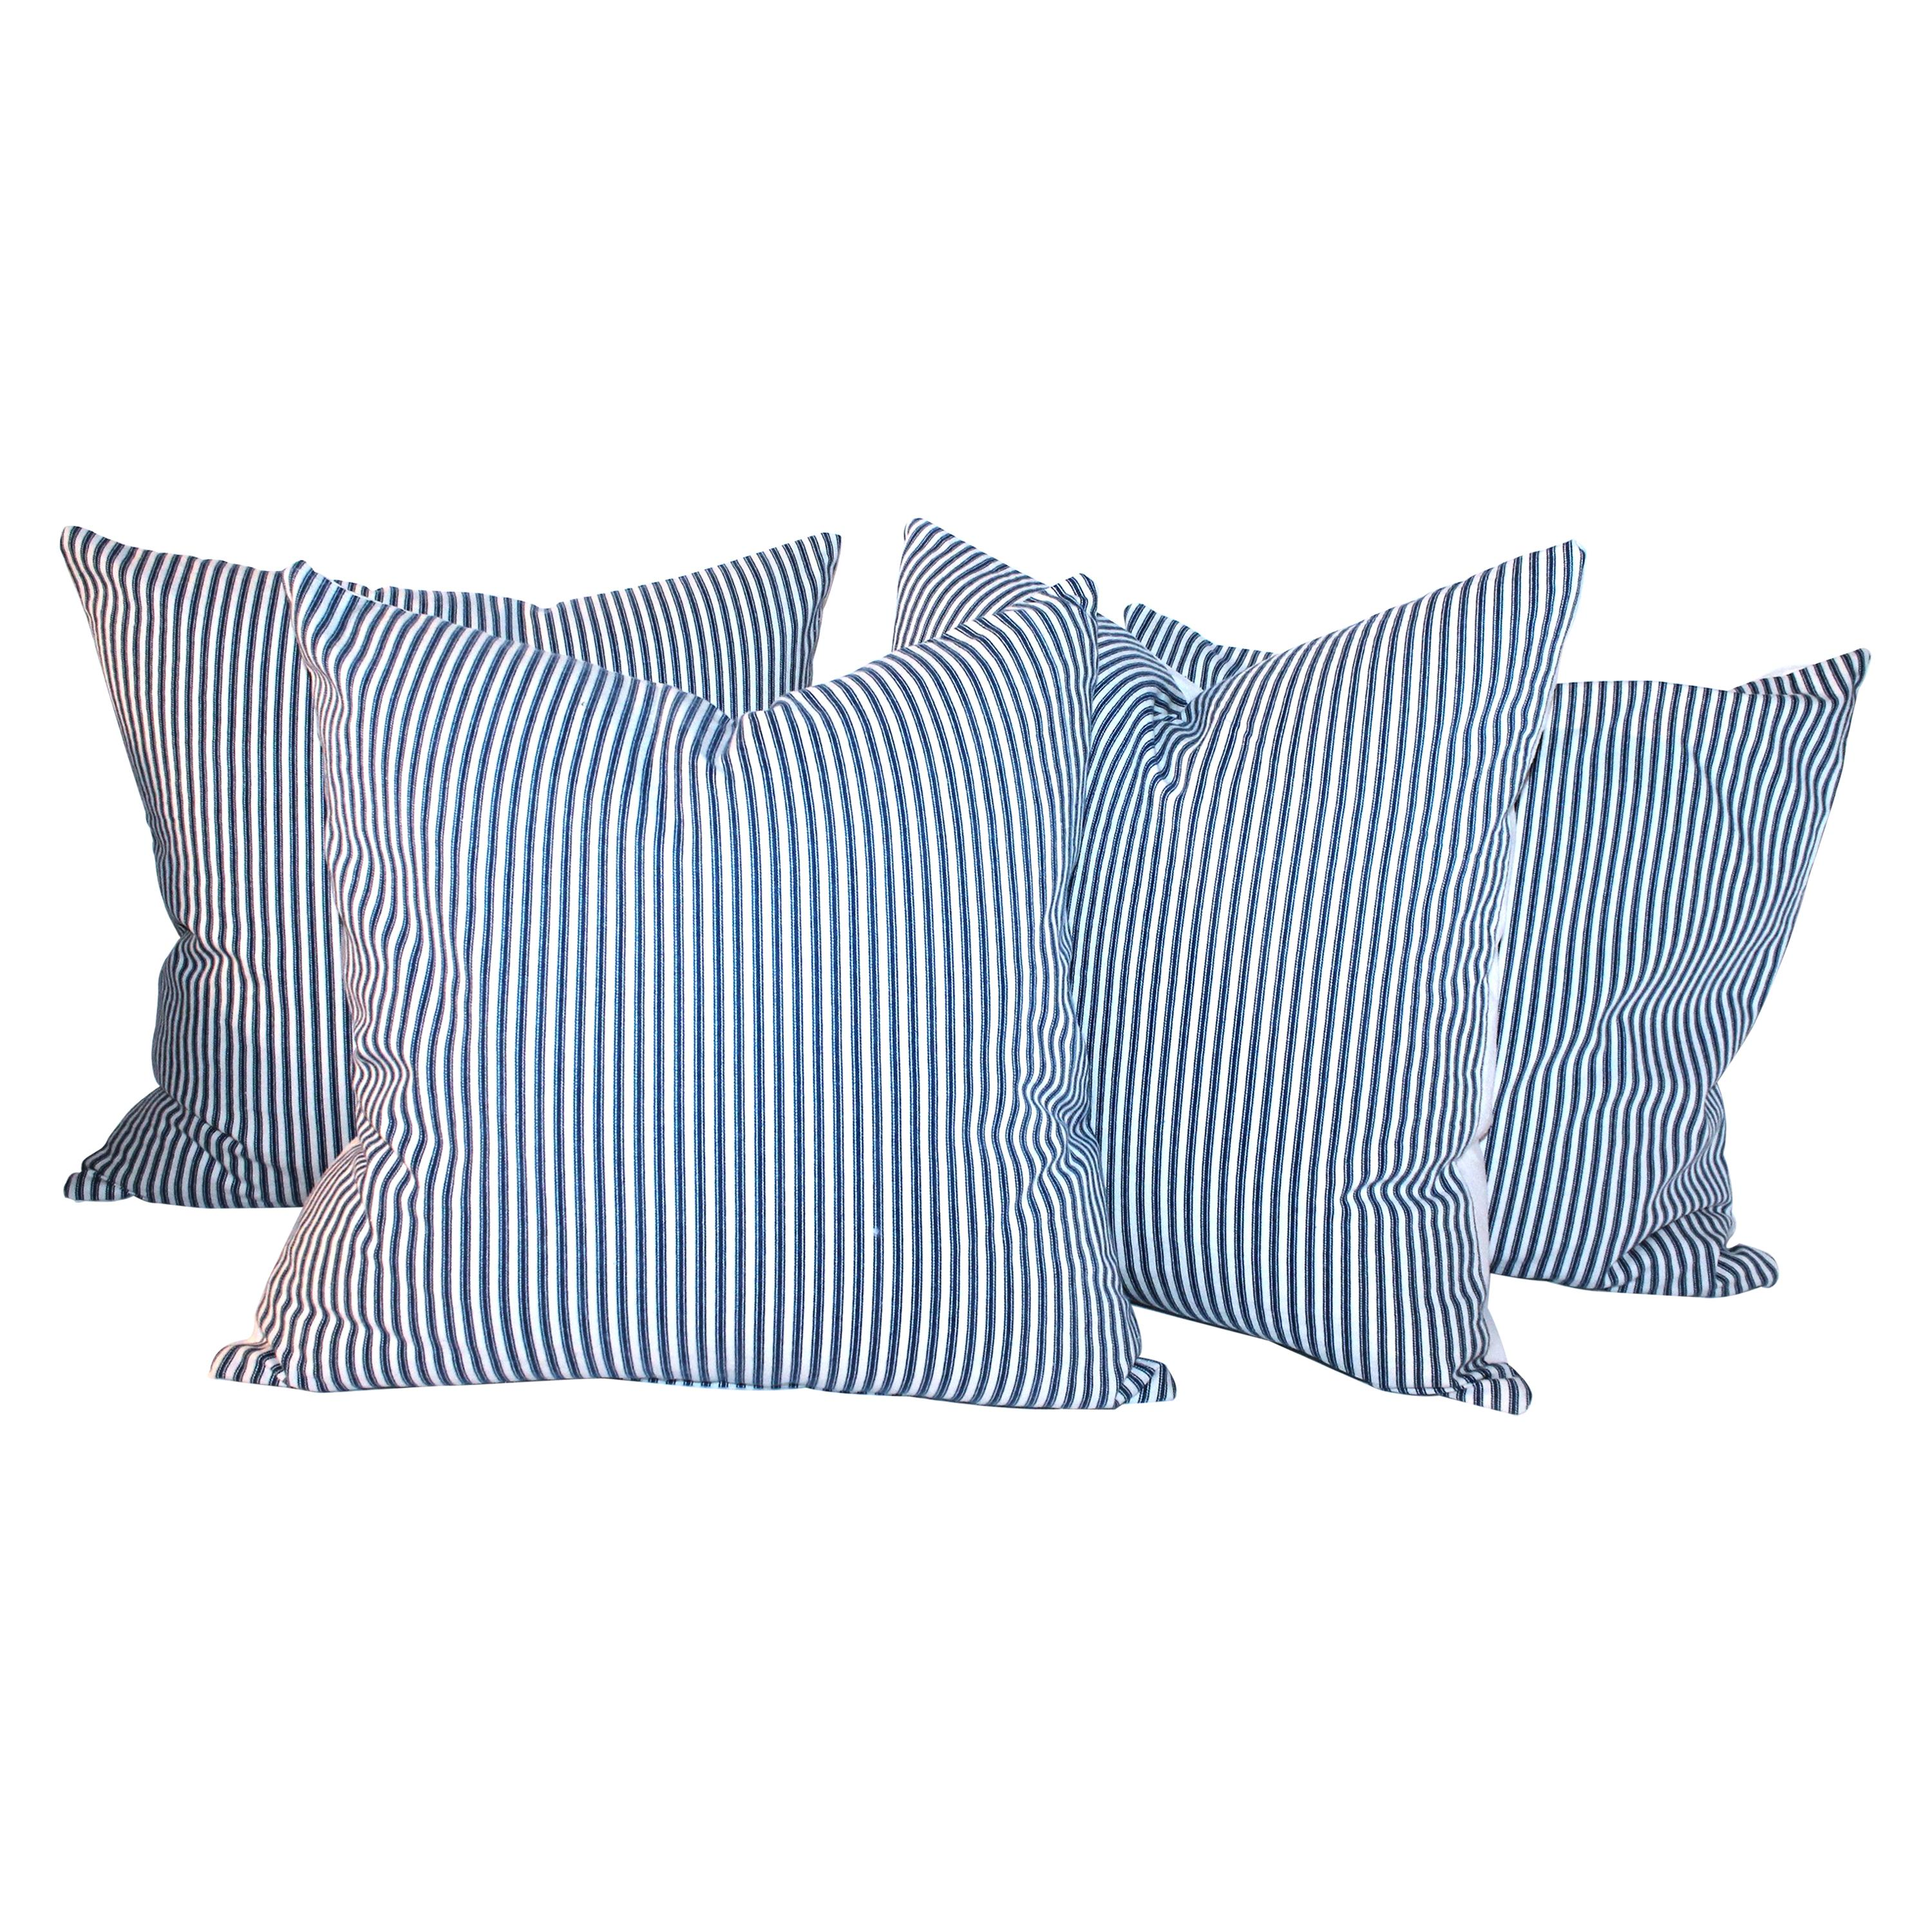 Antique Blue and White Ticking Pillows, 4